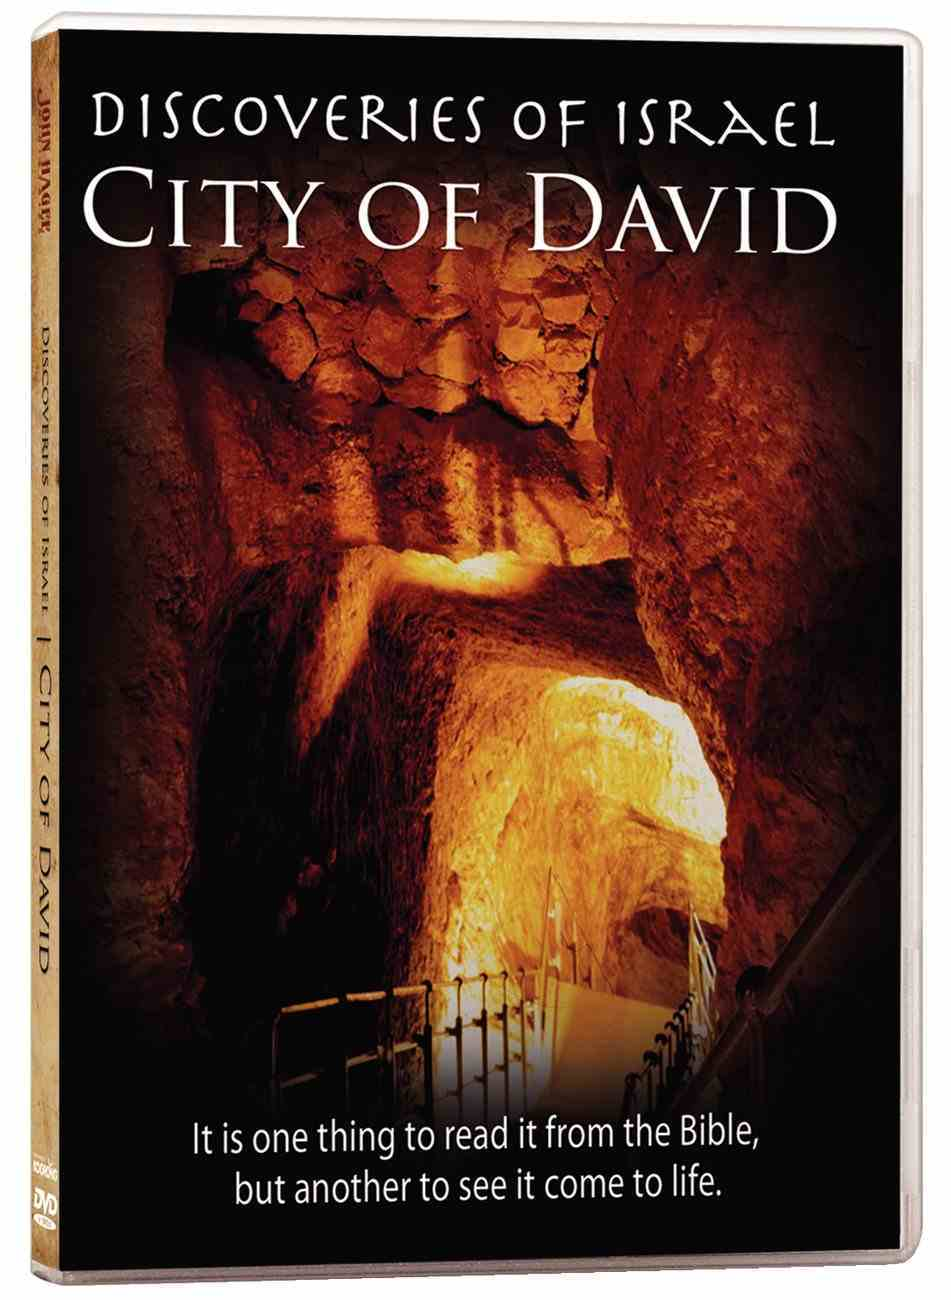 City of David - Discoveries of Israel DVD